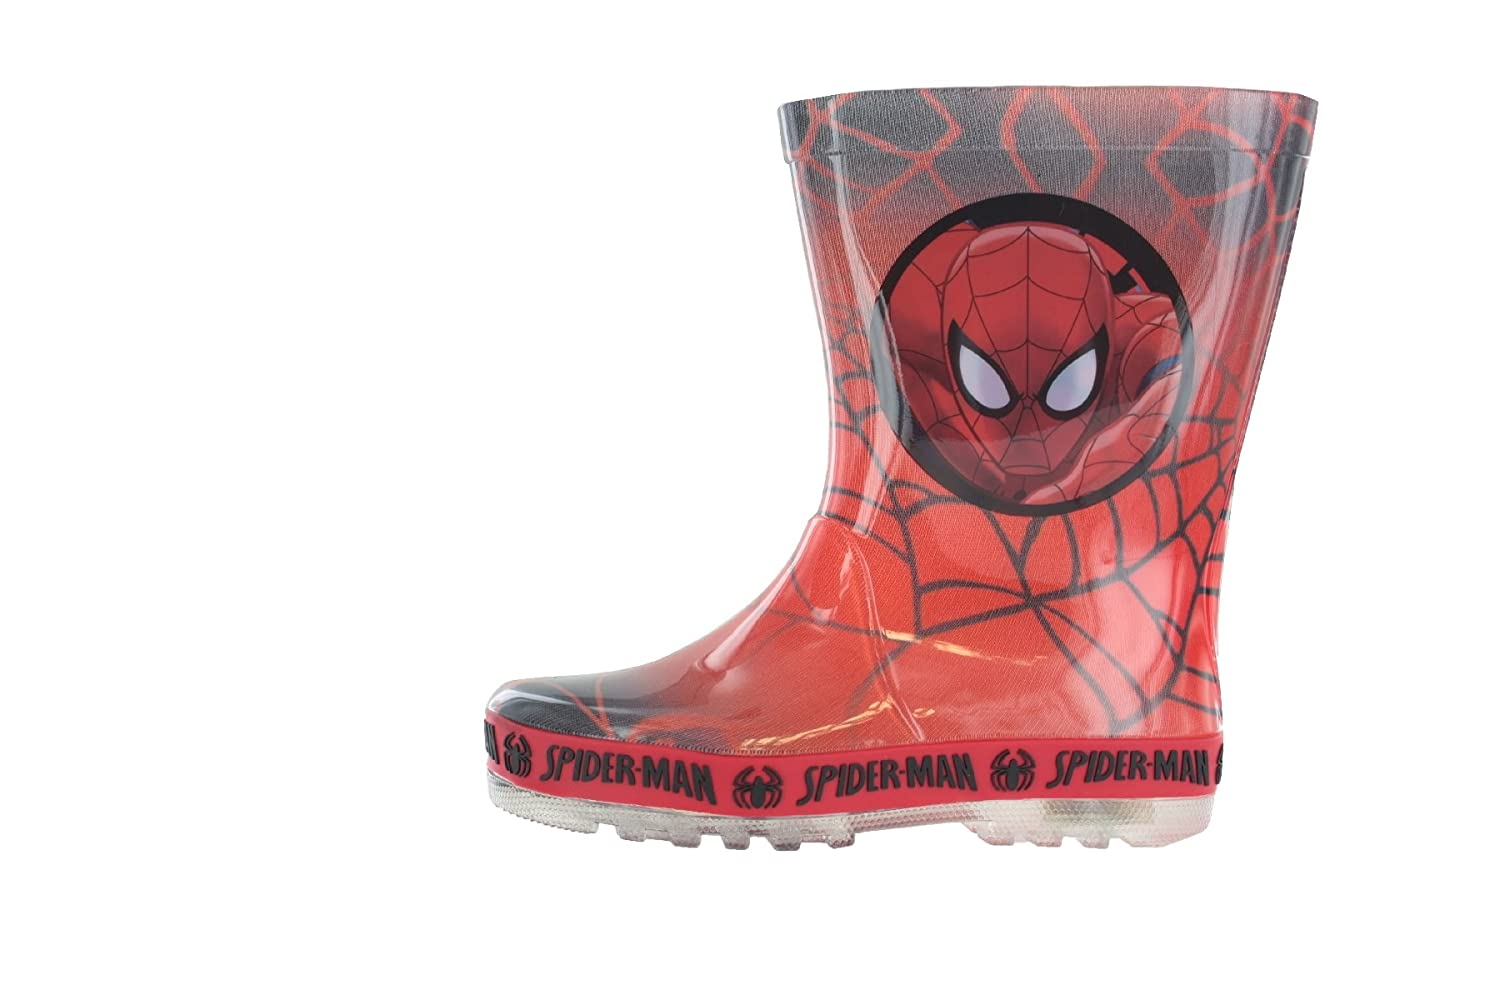 Boys Spiderman Red Wellies Welly Rubber Boots Boys Kids Children Various Sizes Wlwilsonparent